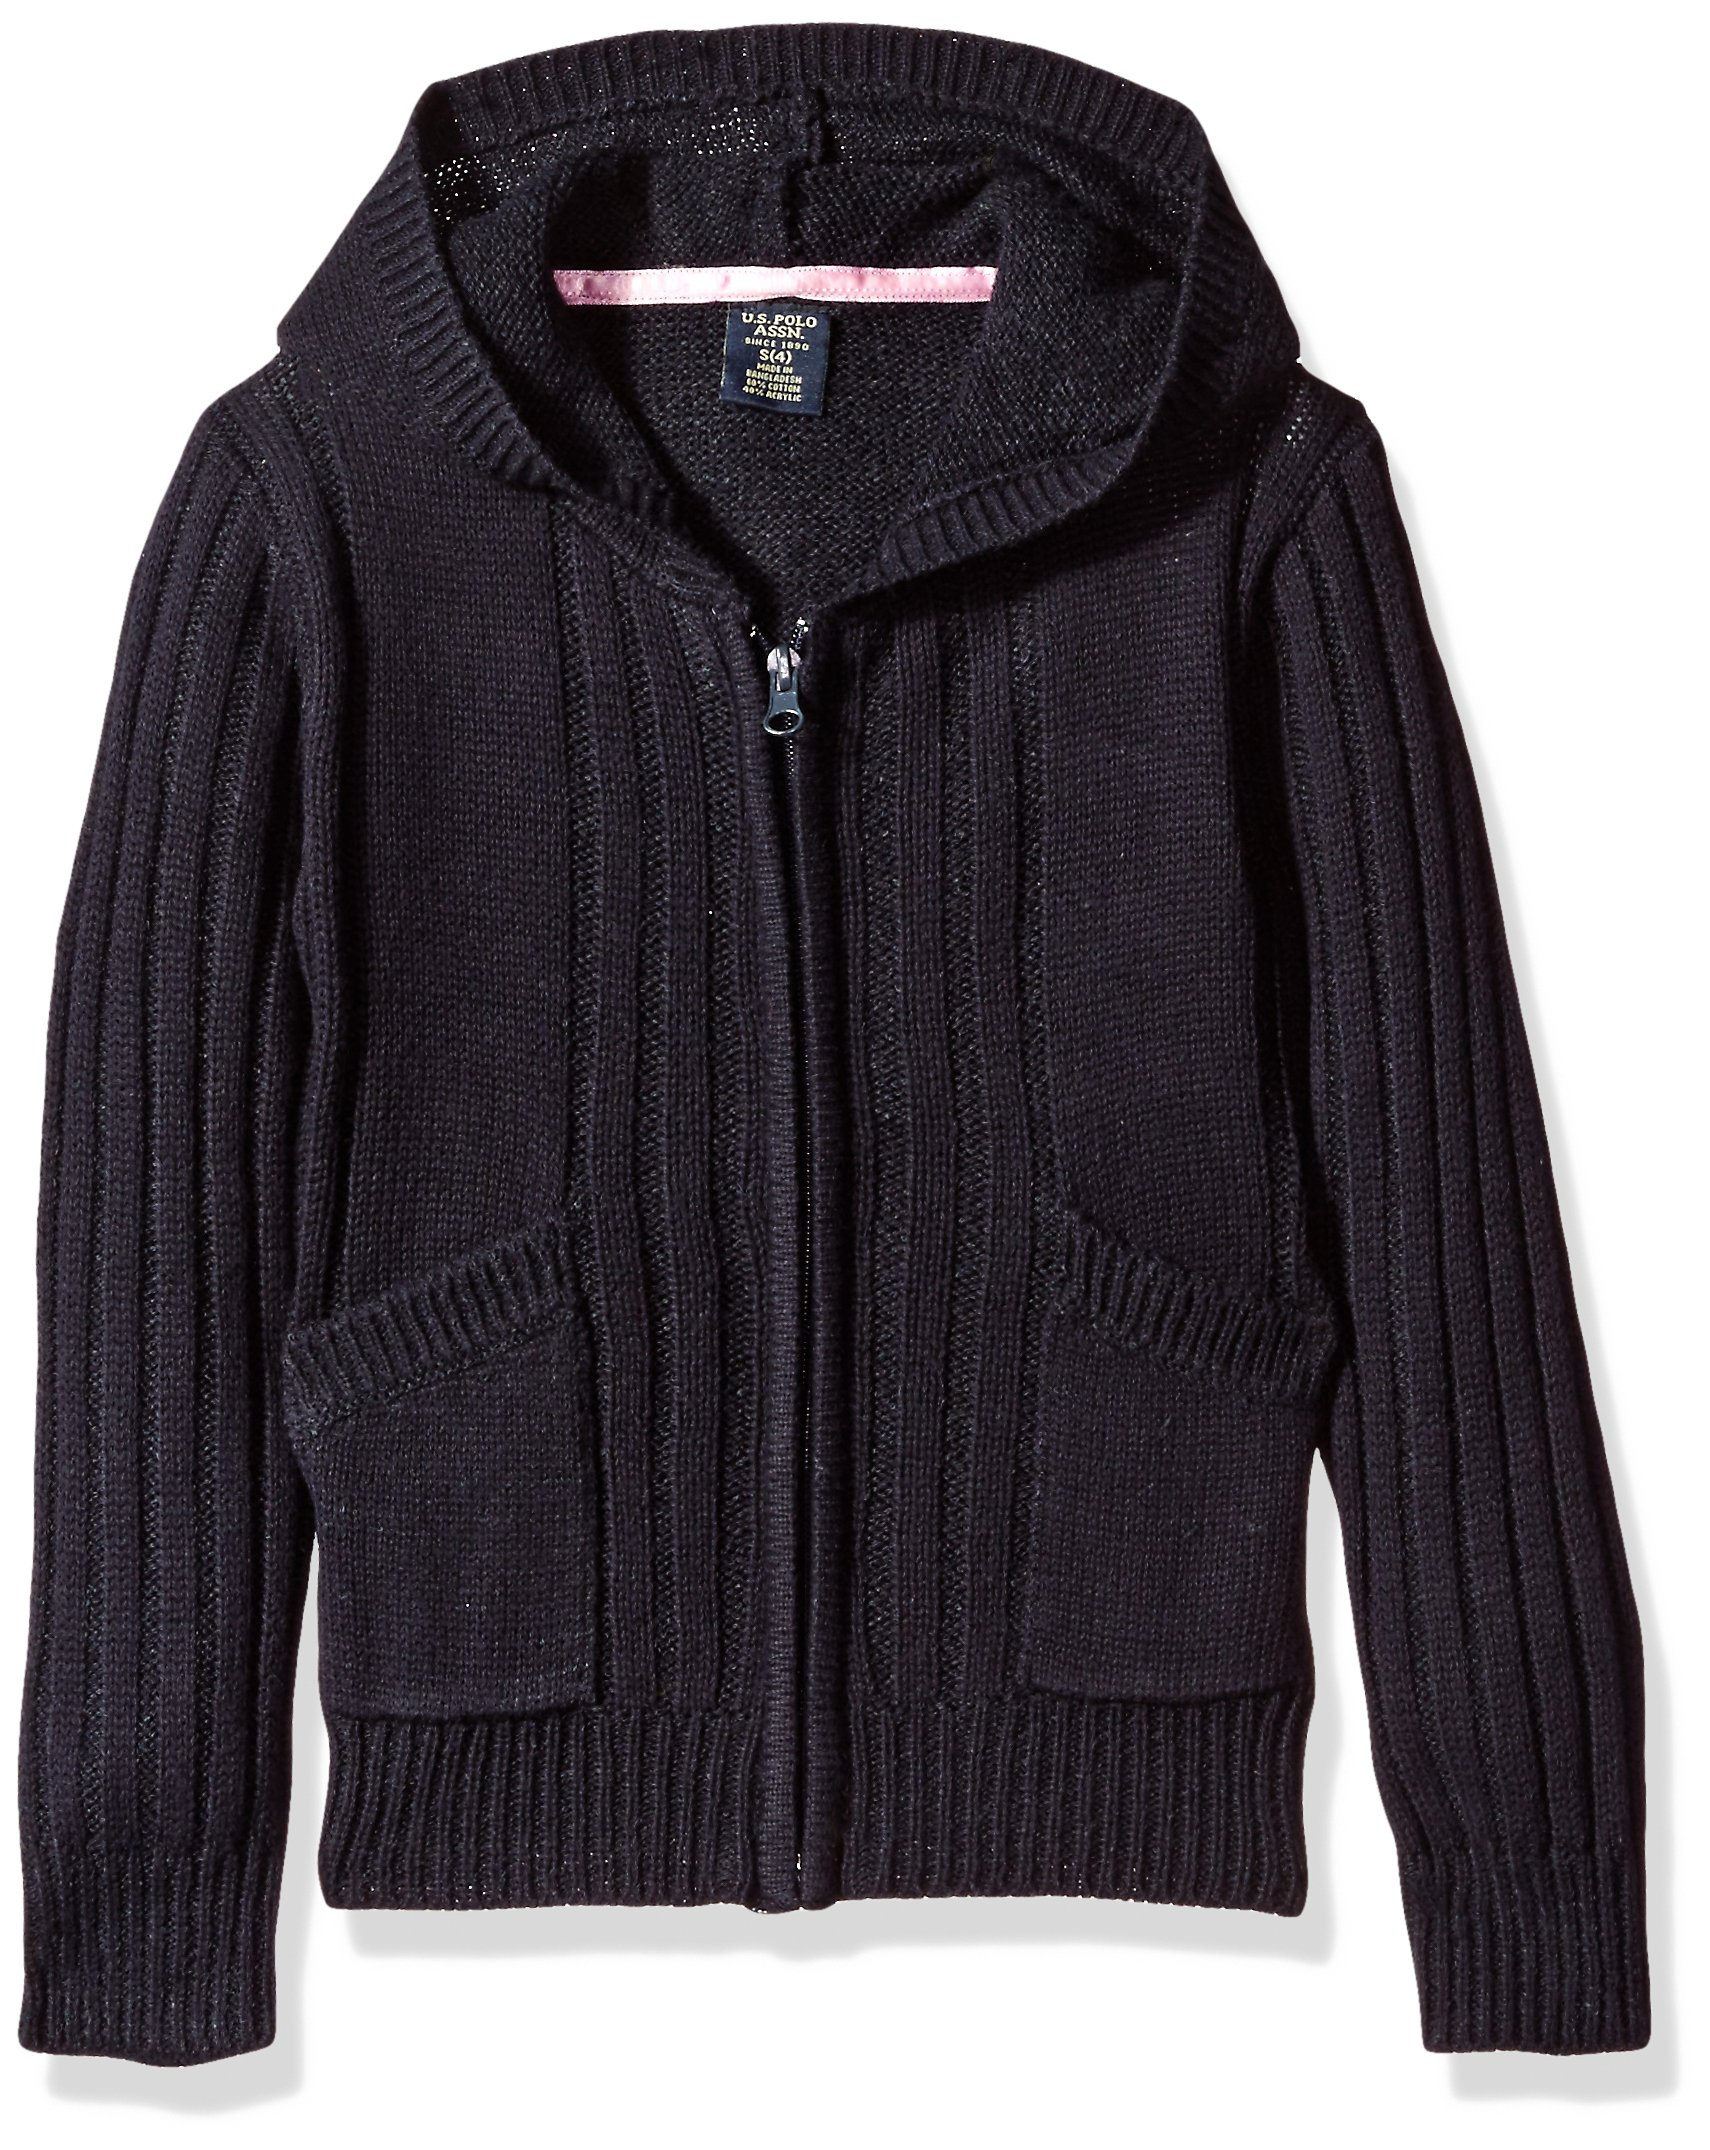 U.S. Polo Assn. Big Girls' Sweater (More Styles Available), Navy-ahah, 7/8